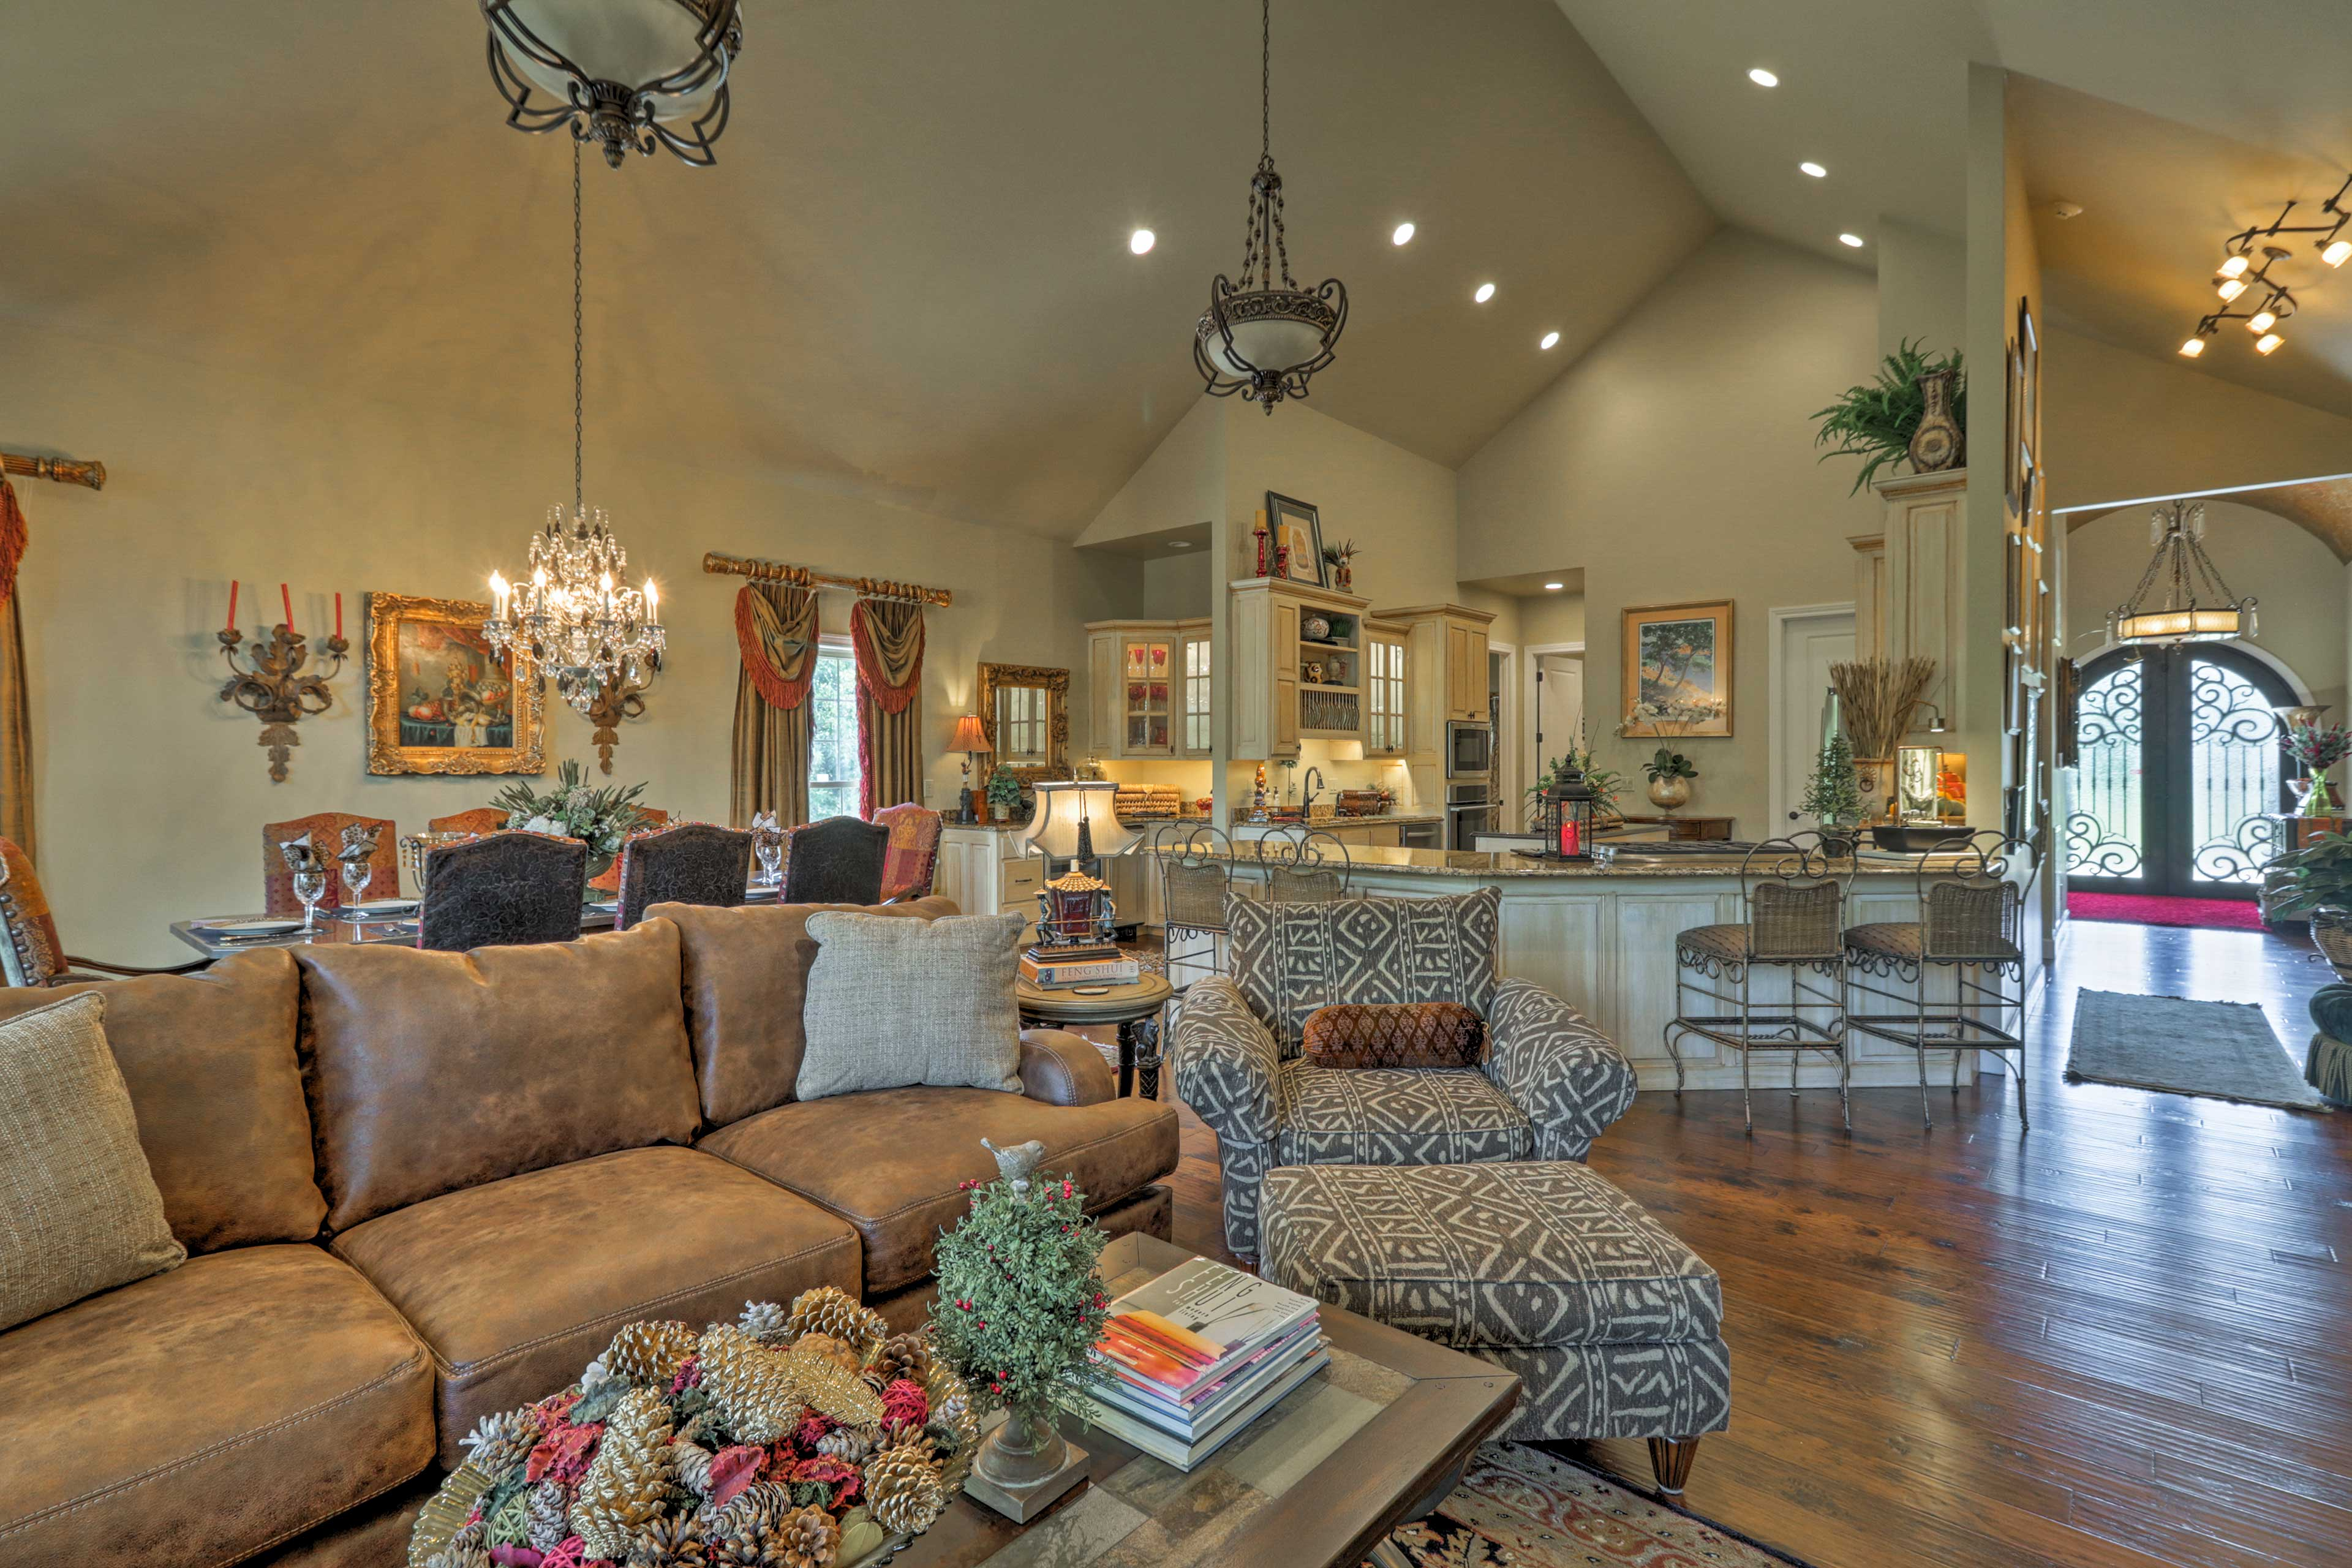 Sink into the oversized furnishings in the living room and unwind.